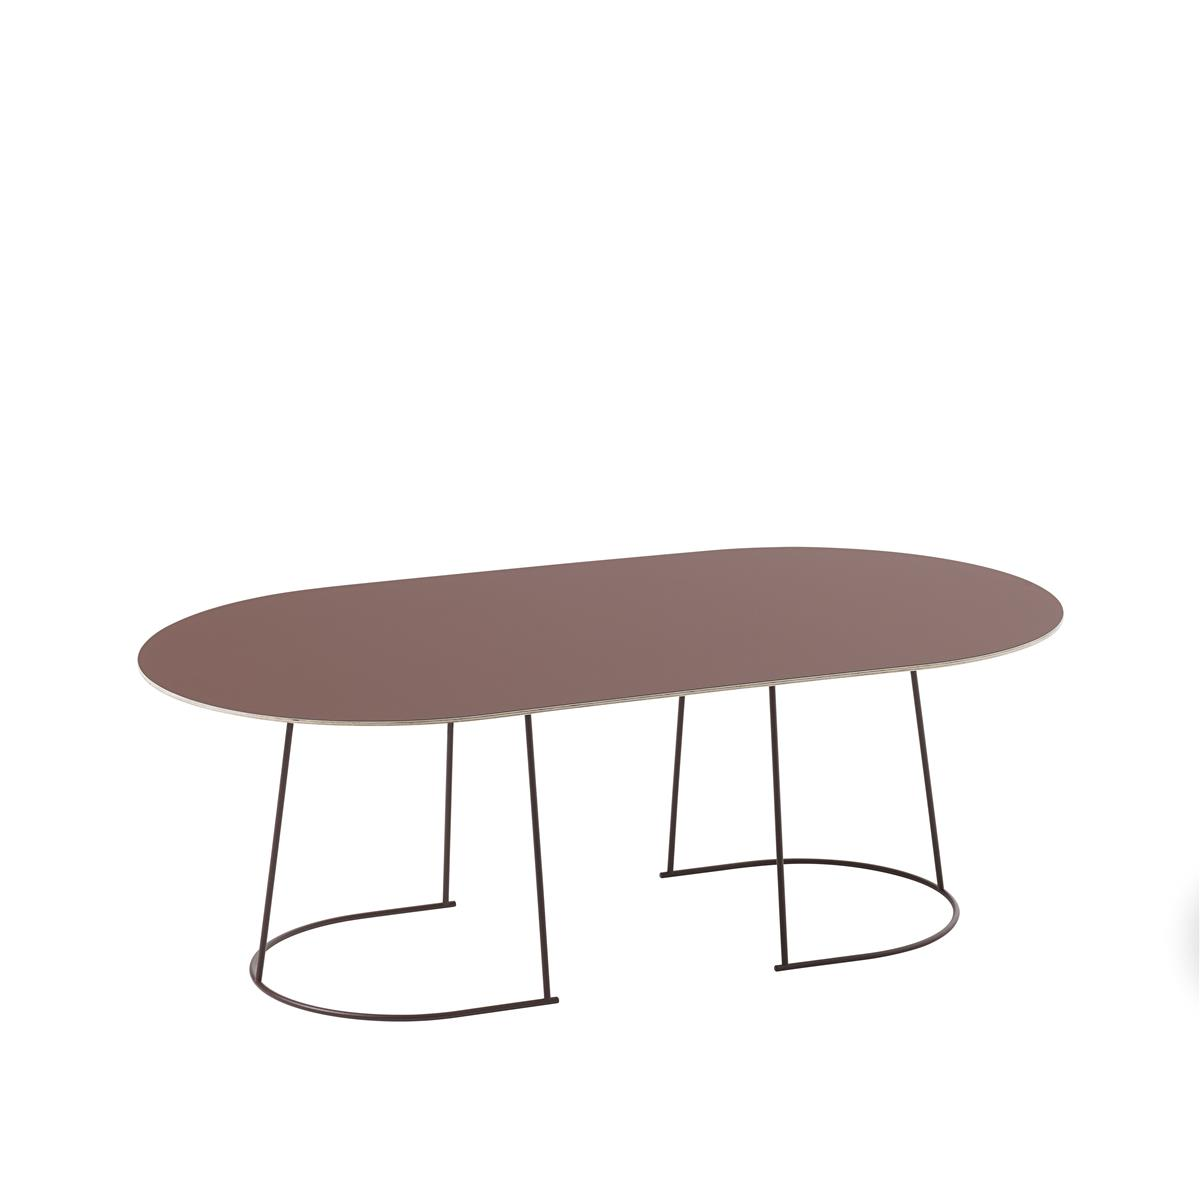 Airy Coffee Table / Large Plum - Nanolaminate